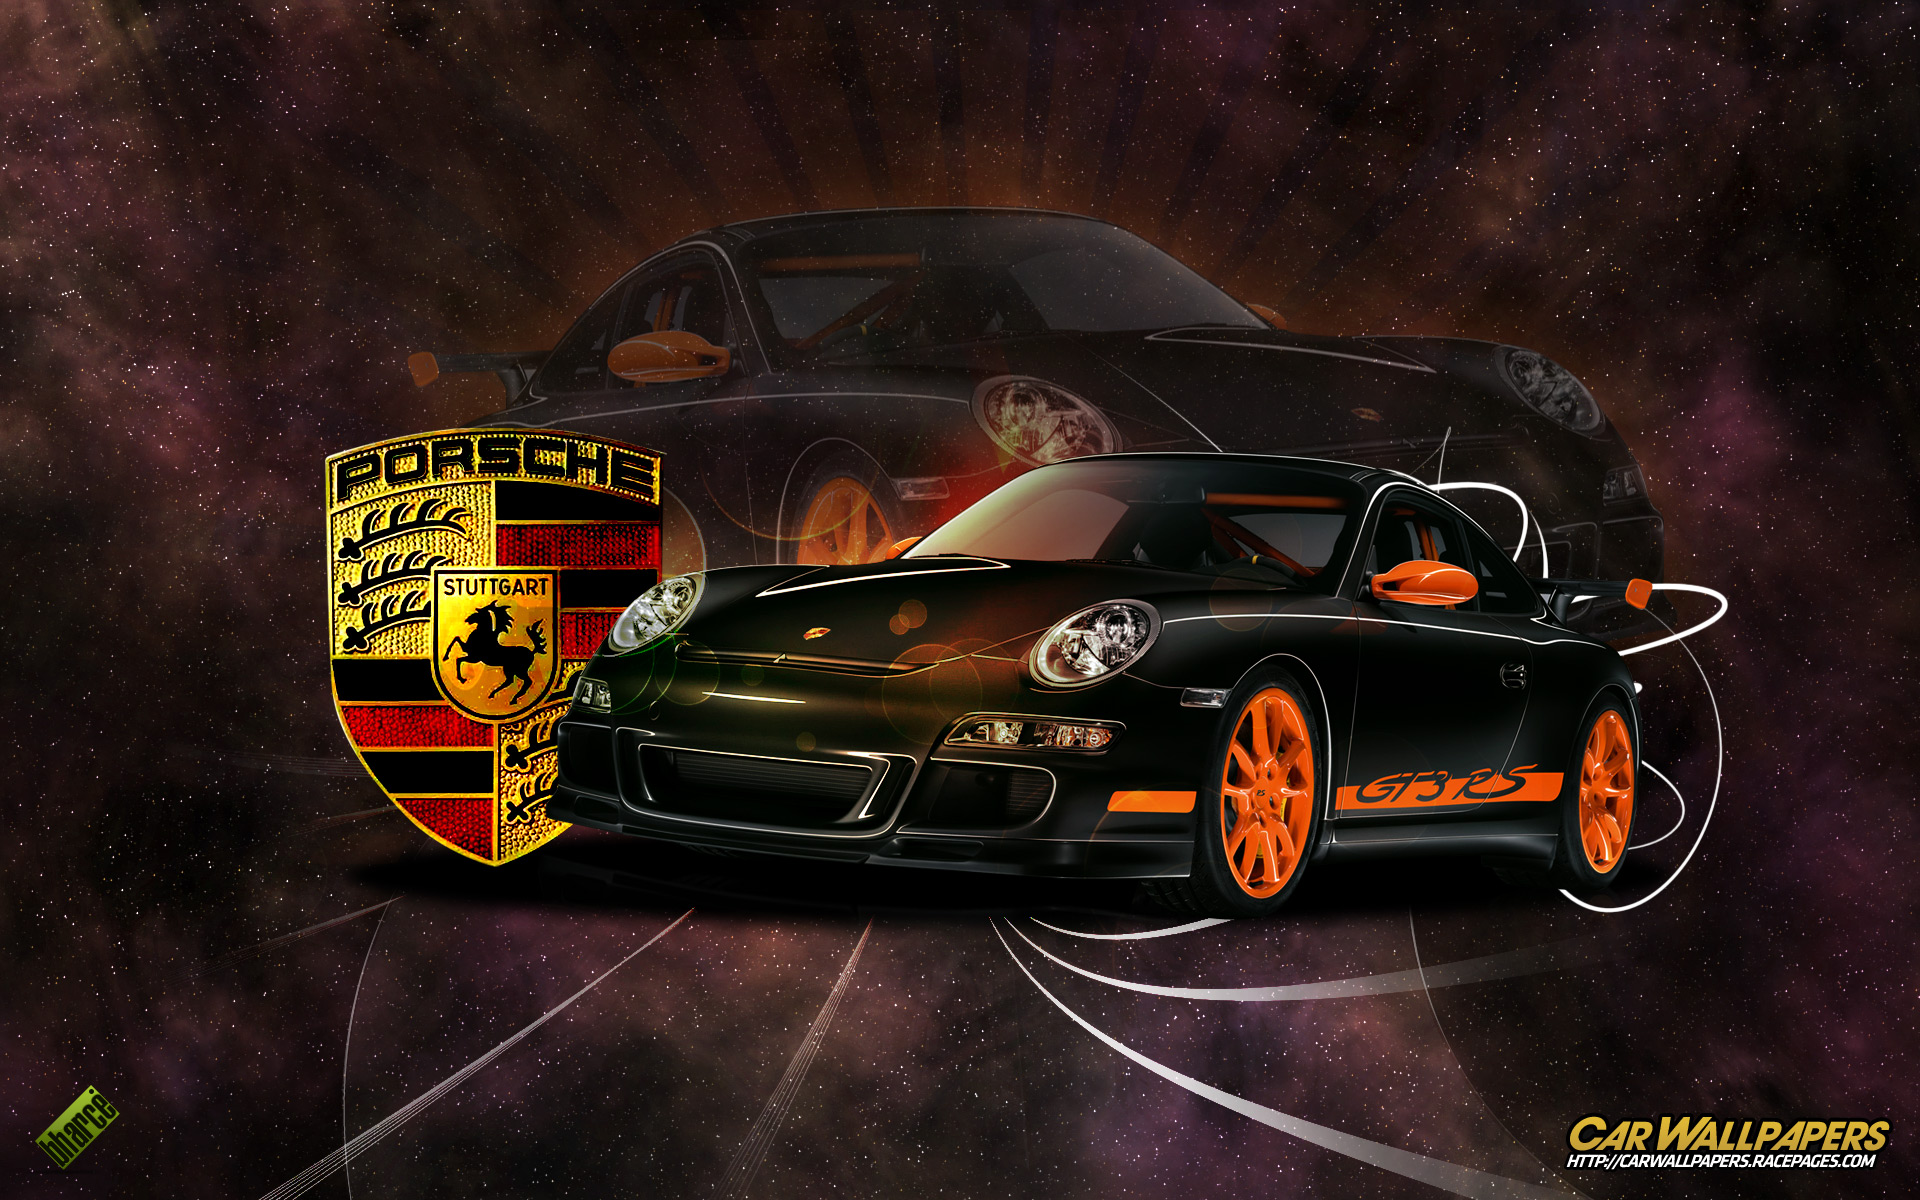 Awesome Porsche HD Wallpaper Pack 86 | Free Download